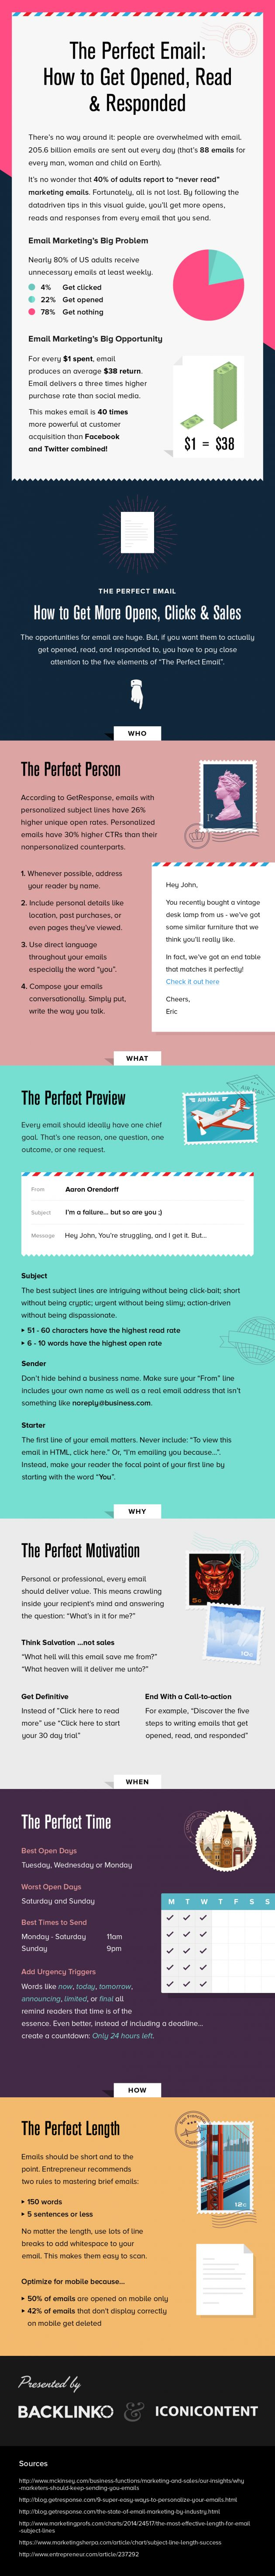 Sick of having your emails ignored? Here's how to get noticed and get results backed by science and data.